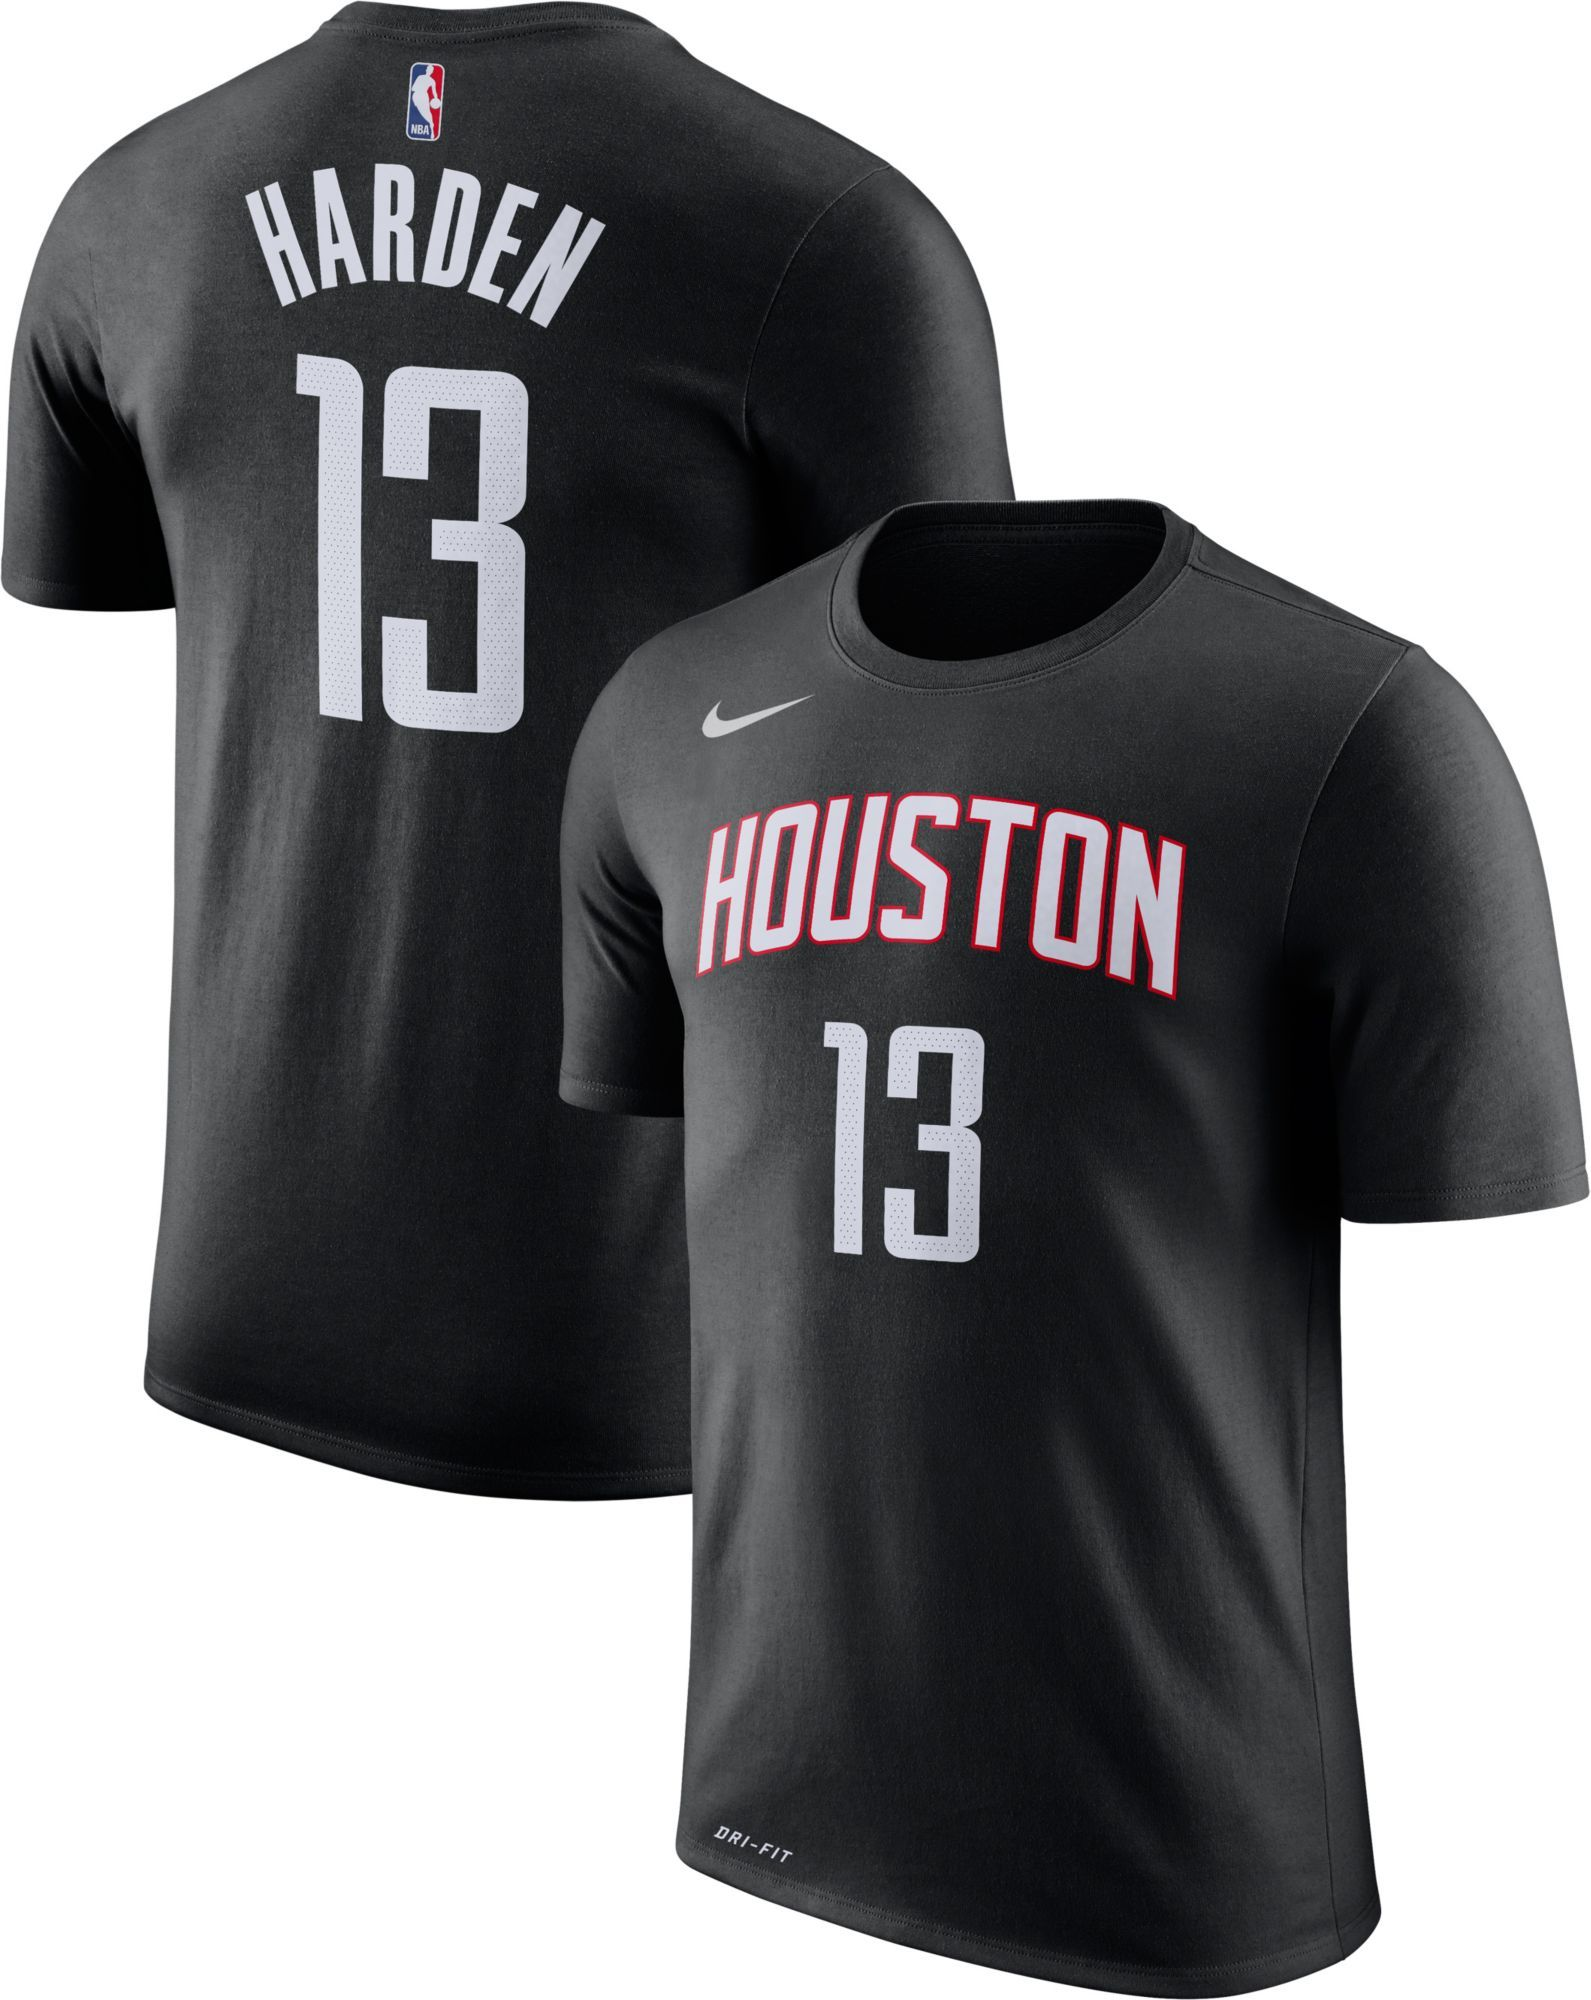 wholesale dealer fd3fd 4ed40 Nike Youth Houston Rockets James Harden #13 Dri-FIT Black T ...